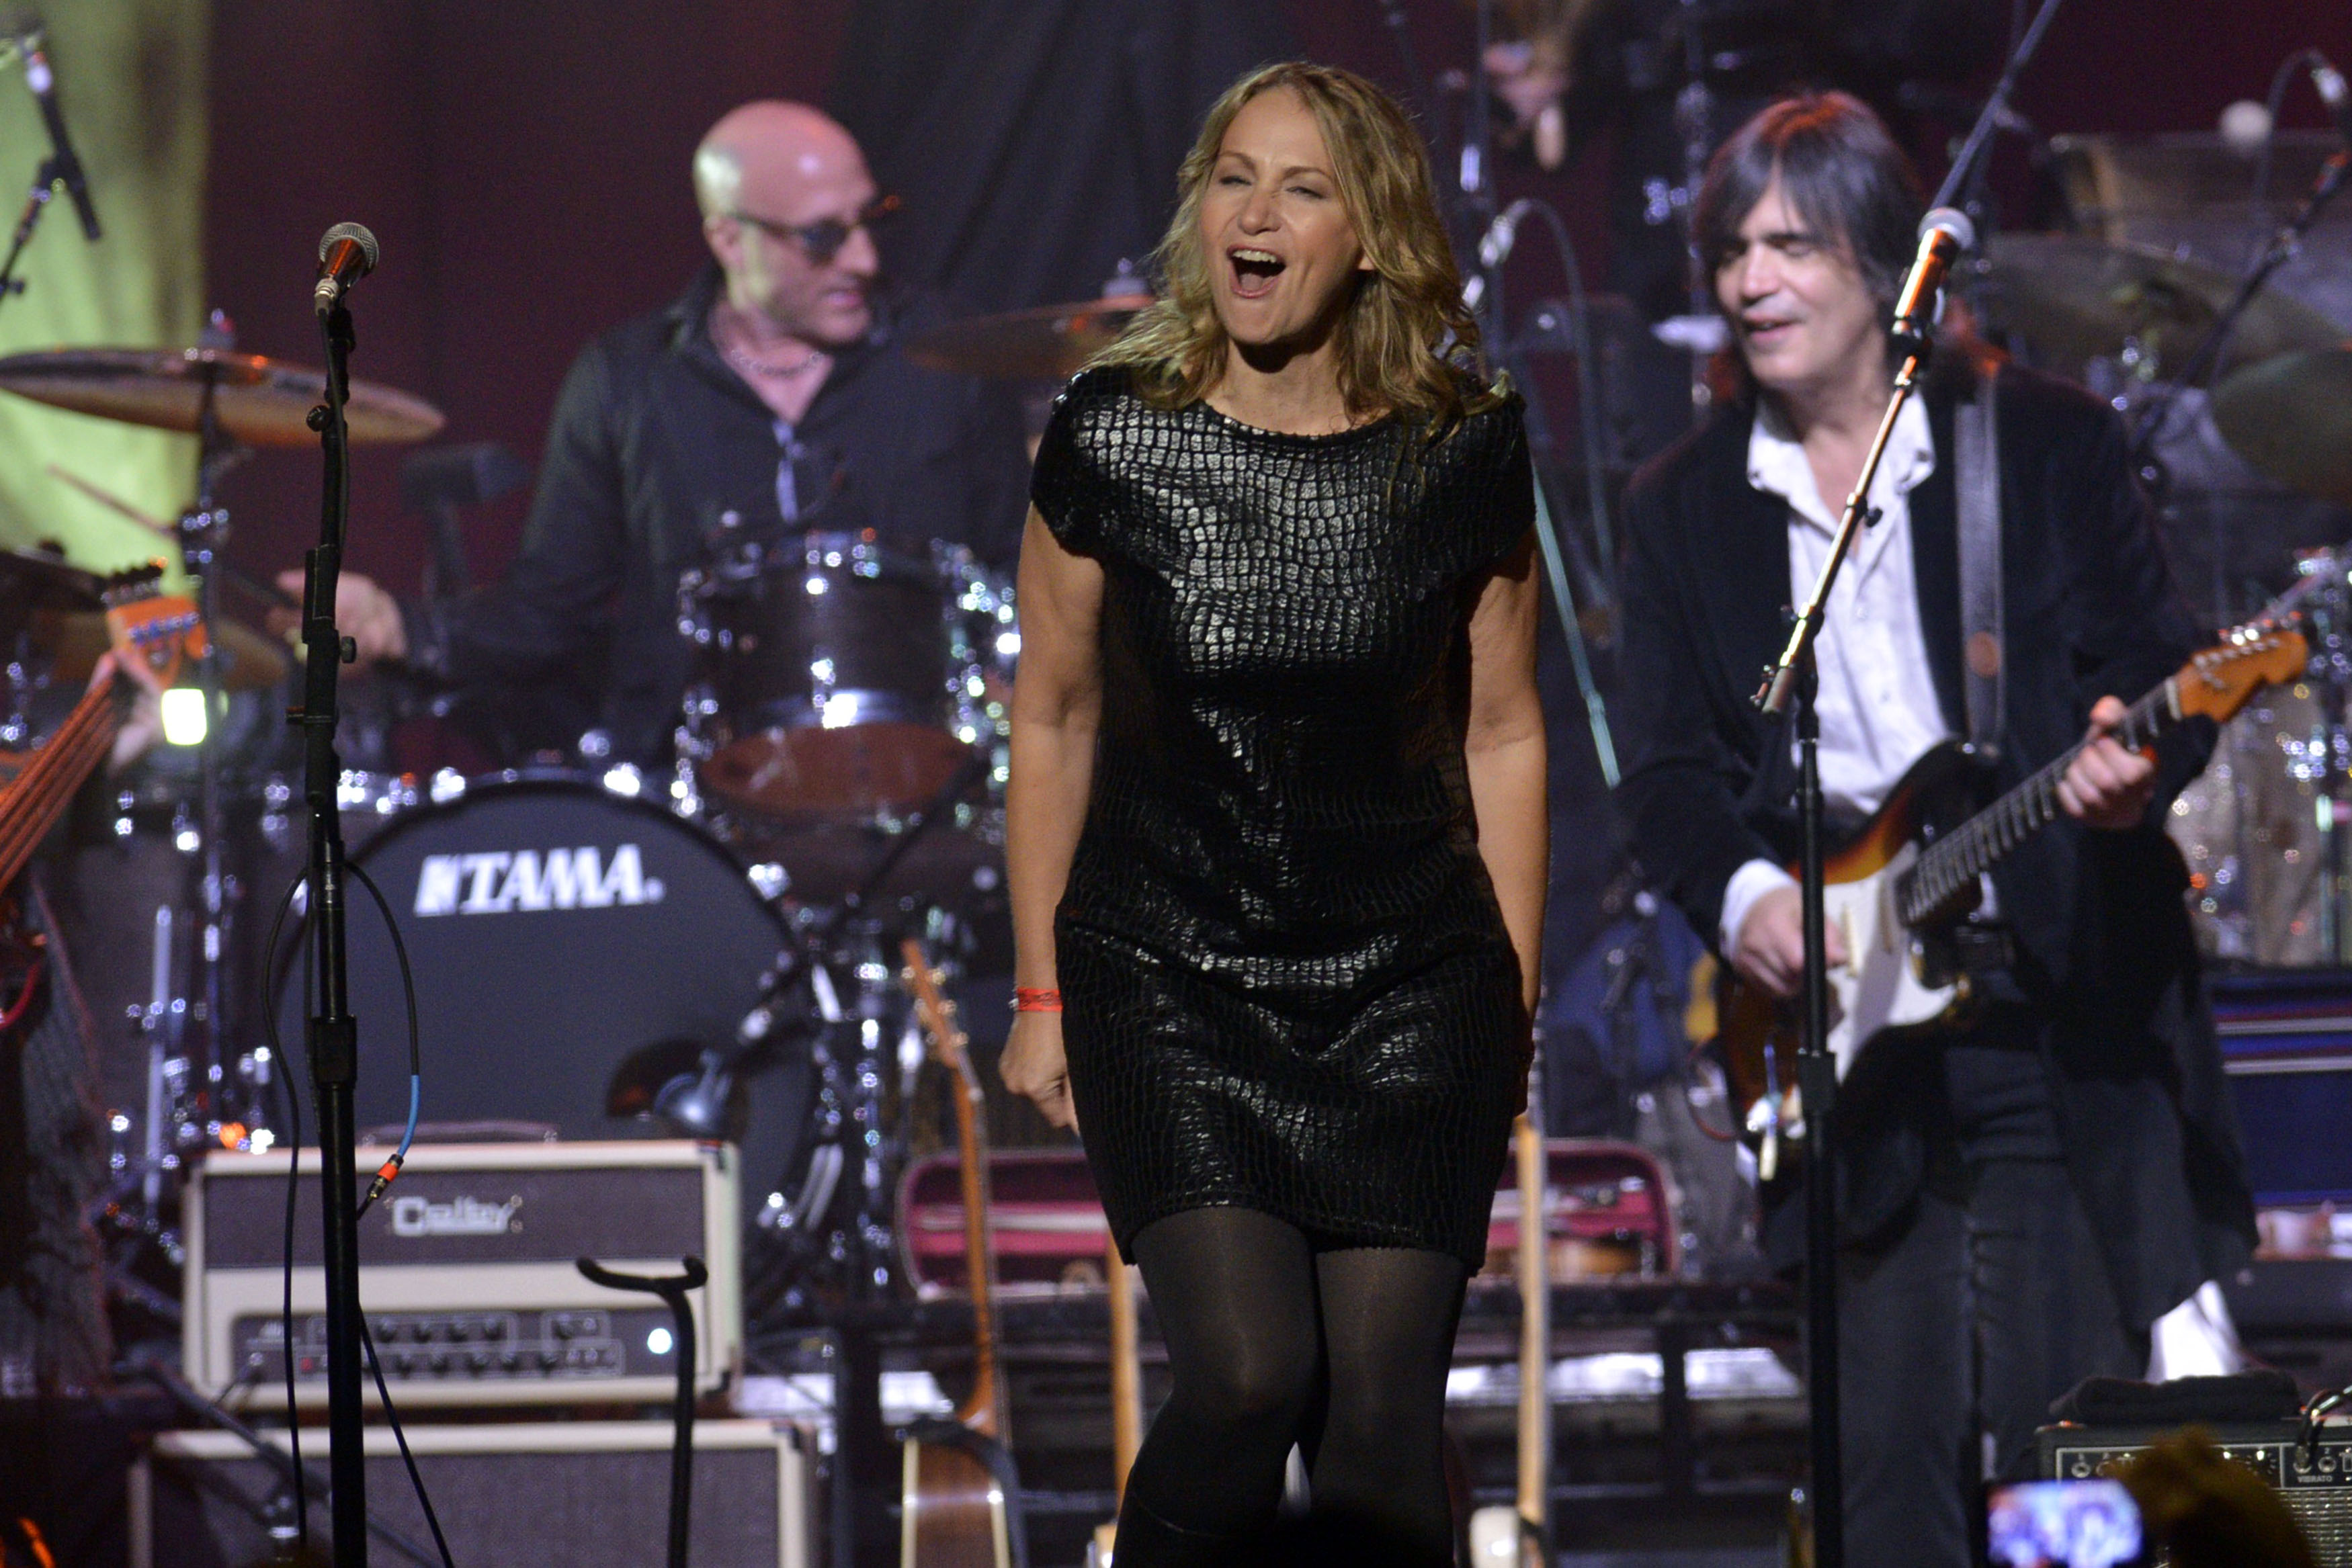 Joan Osborne dishes on career ahead of show at The Birchmere